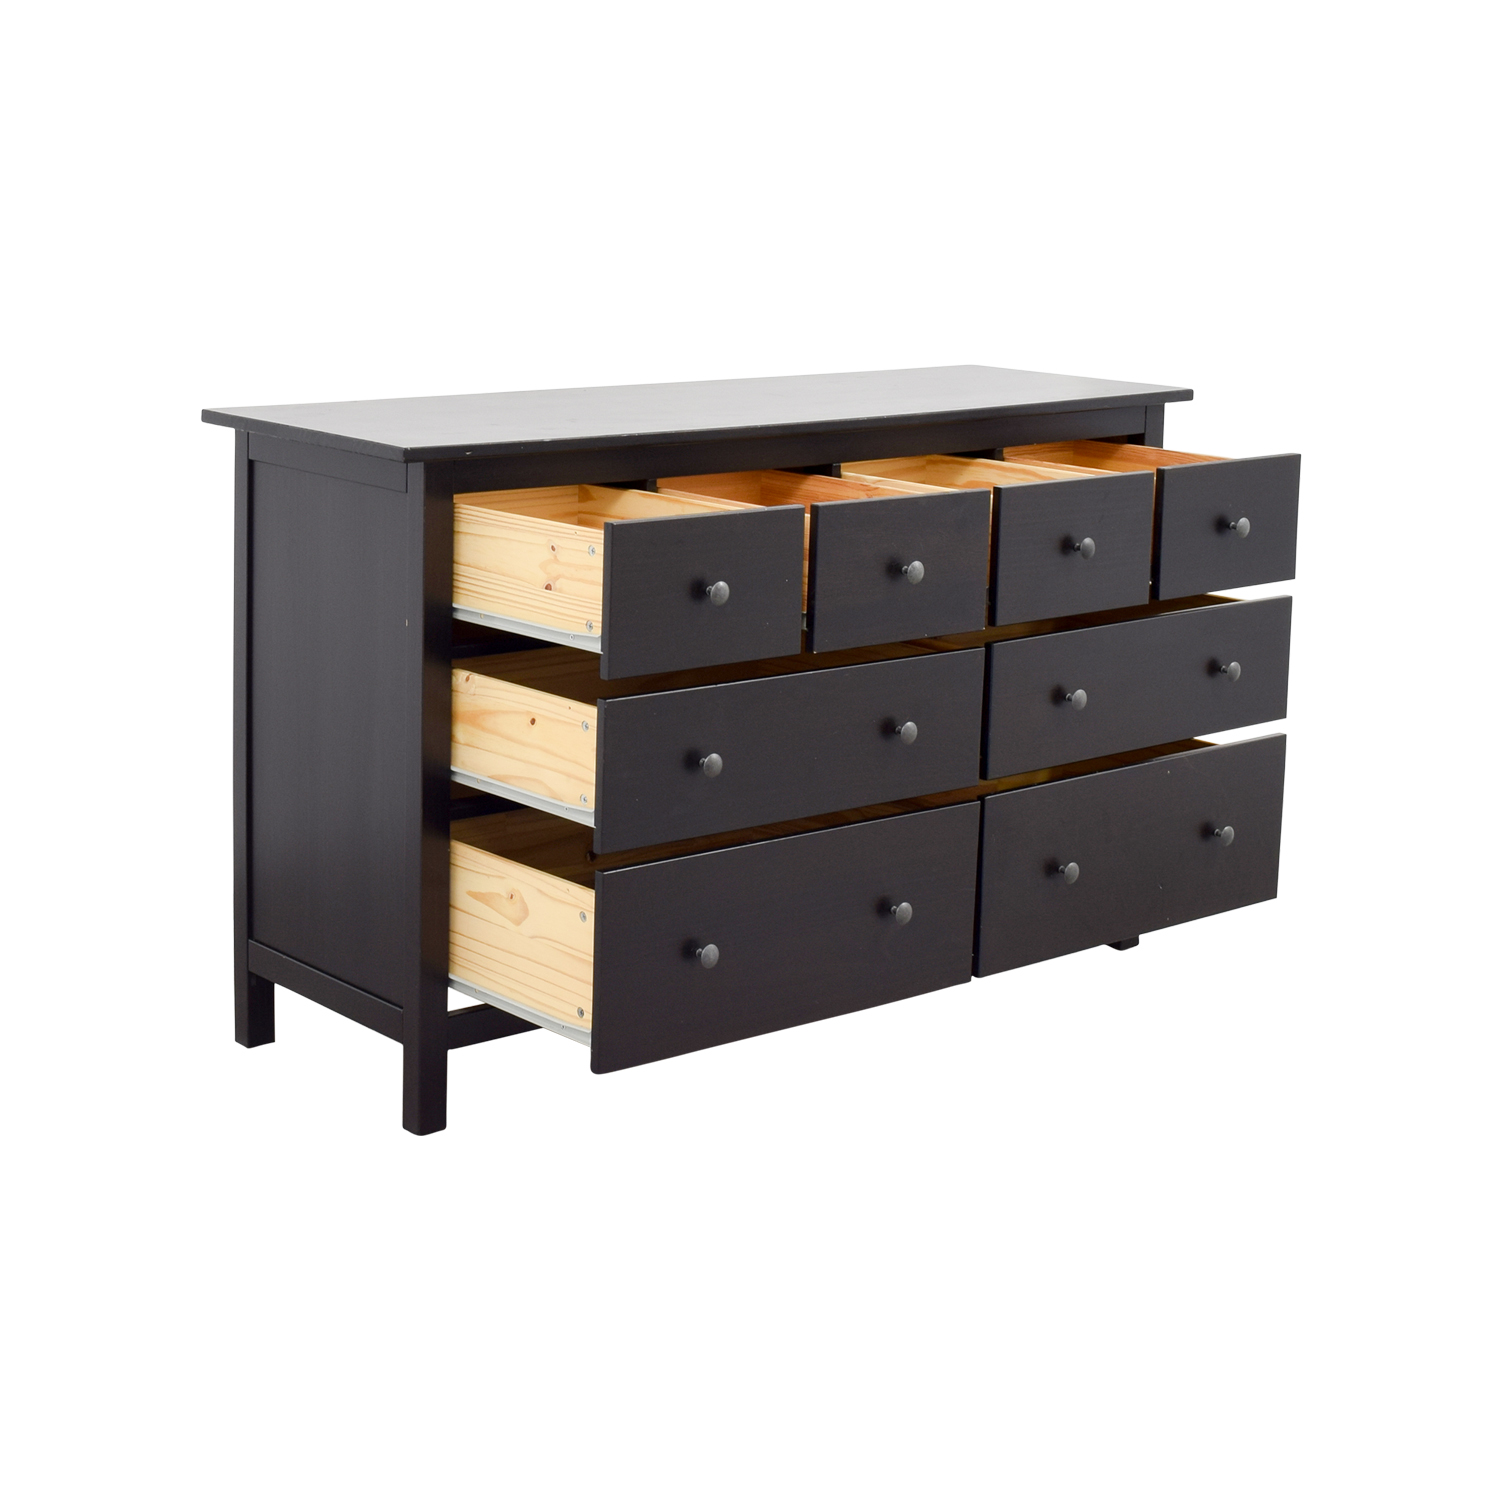 ikea schuhschrank hemnes hemnes schuhschrank 2fach wei ikea schuhschrank ikea wei hemnes. Black Bedroom Furniture Sets. Home Design Ideas